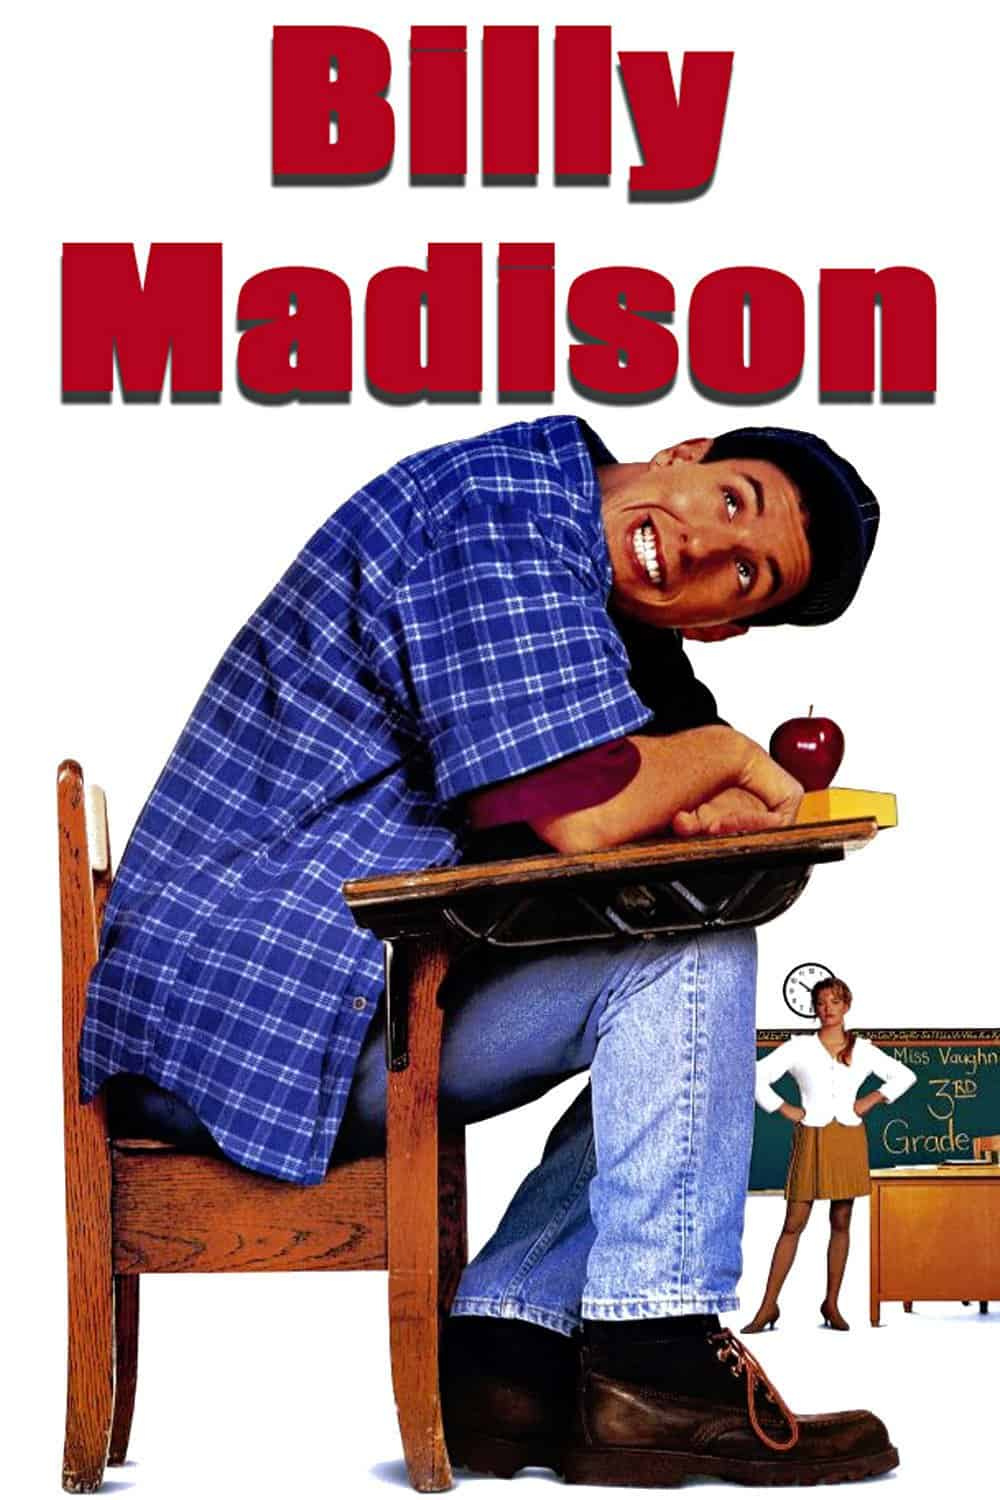 Billy Madison, 1995